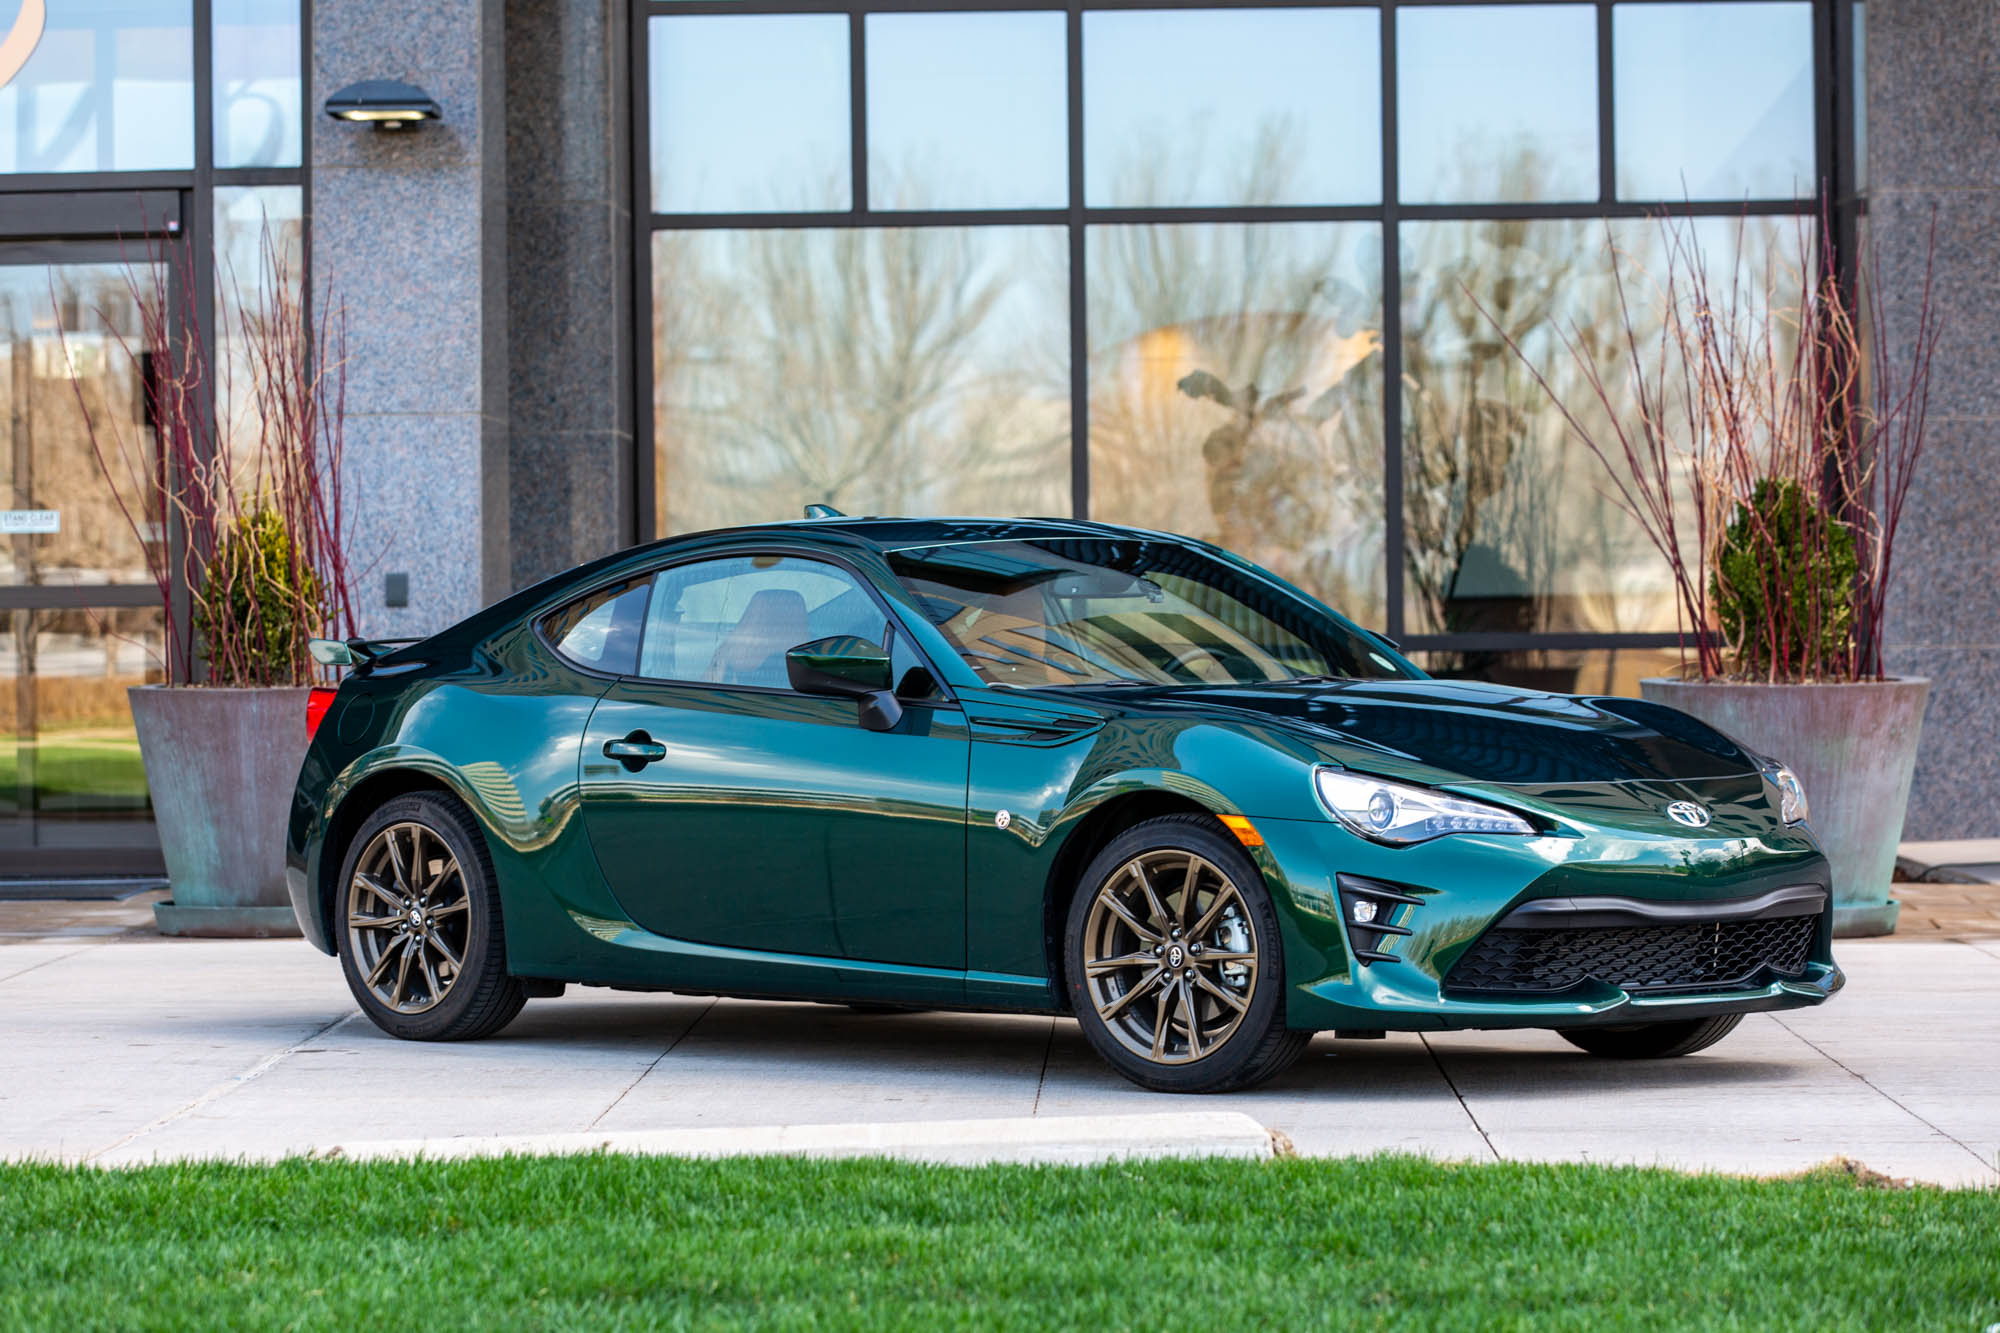 New And Used Toyota 86 Prices Photos Reviews Specs The Car Connection